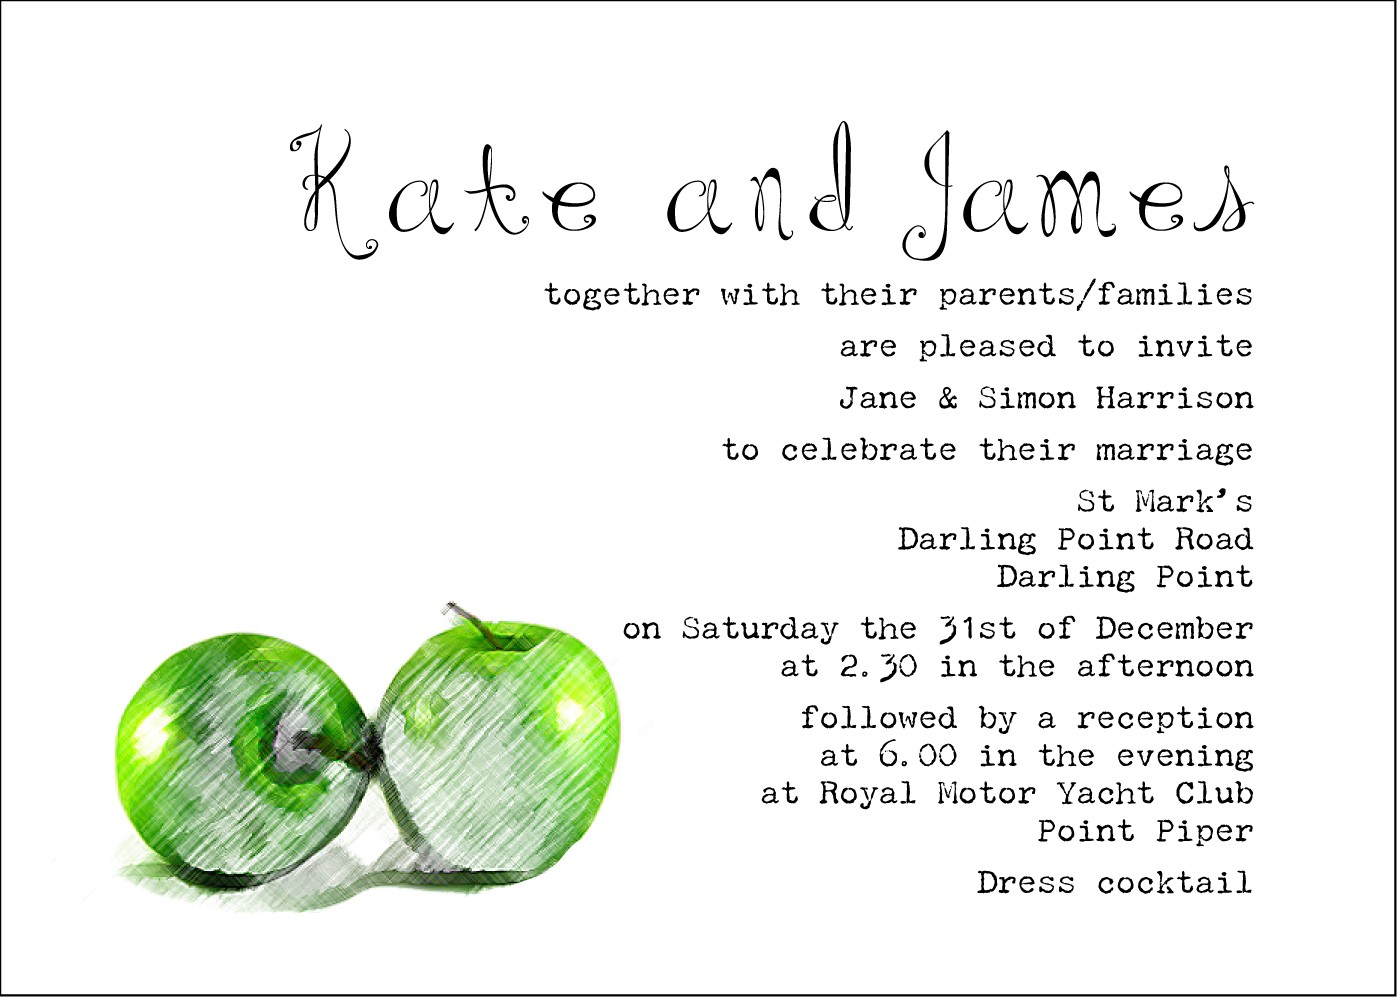 Wedding Invitation From Bride And Groom